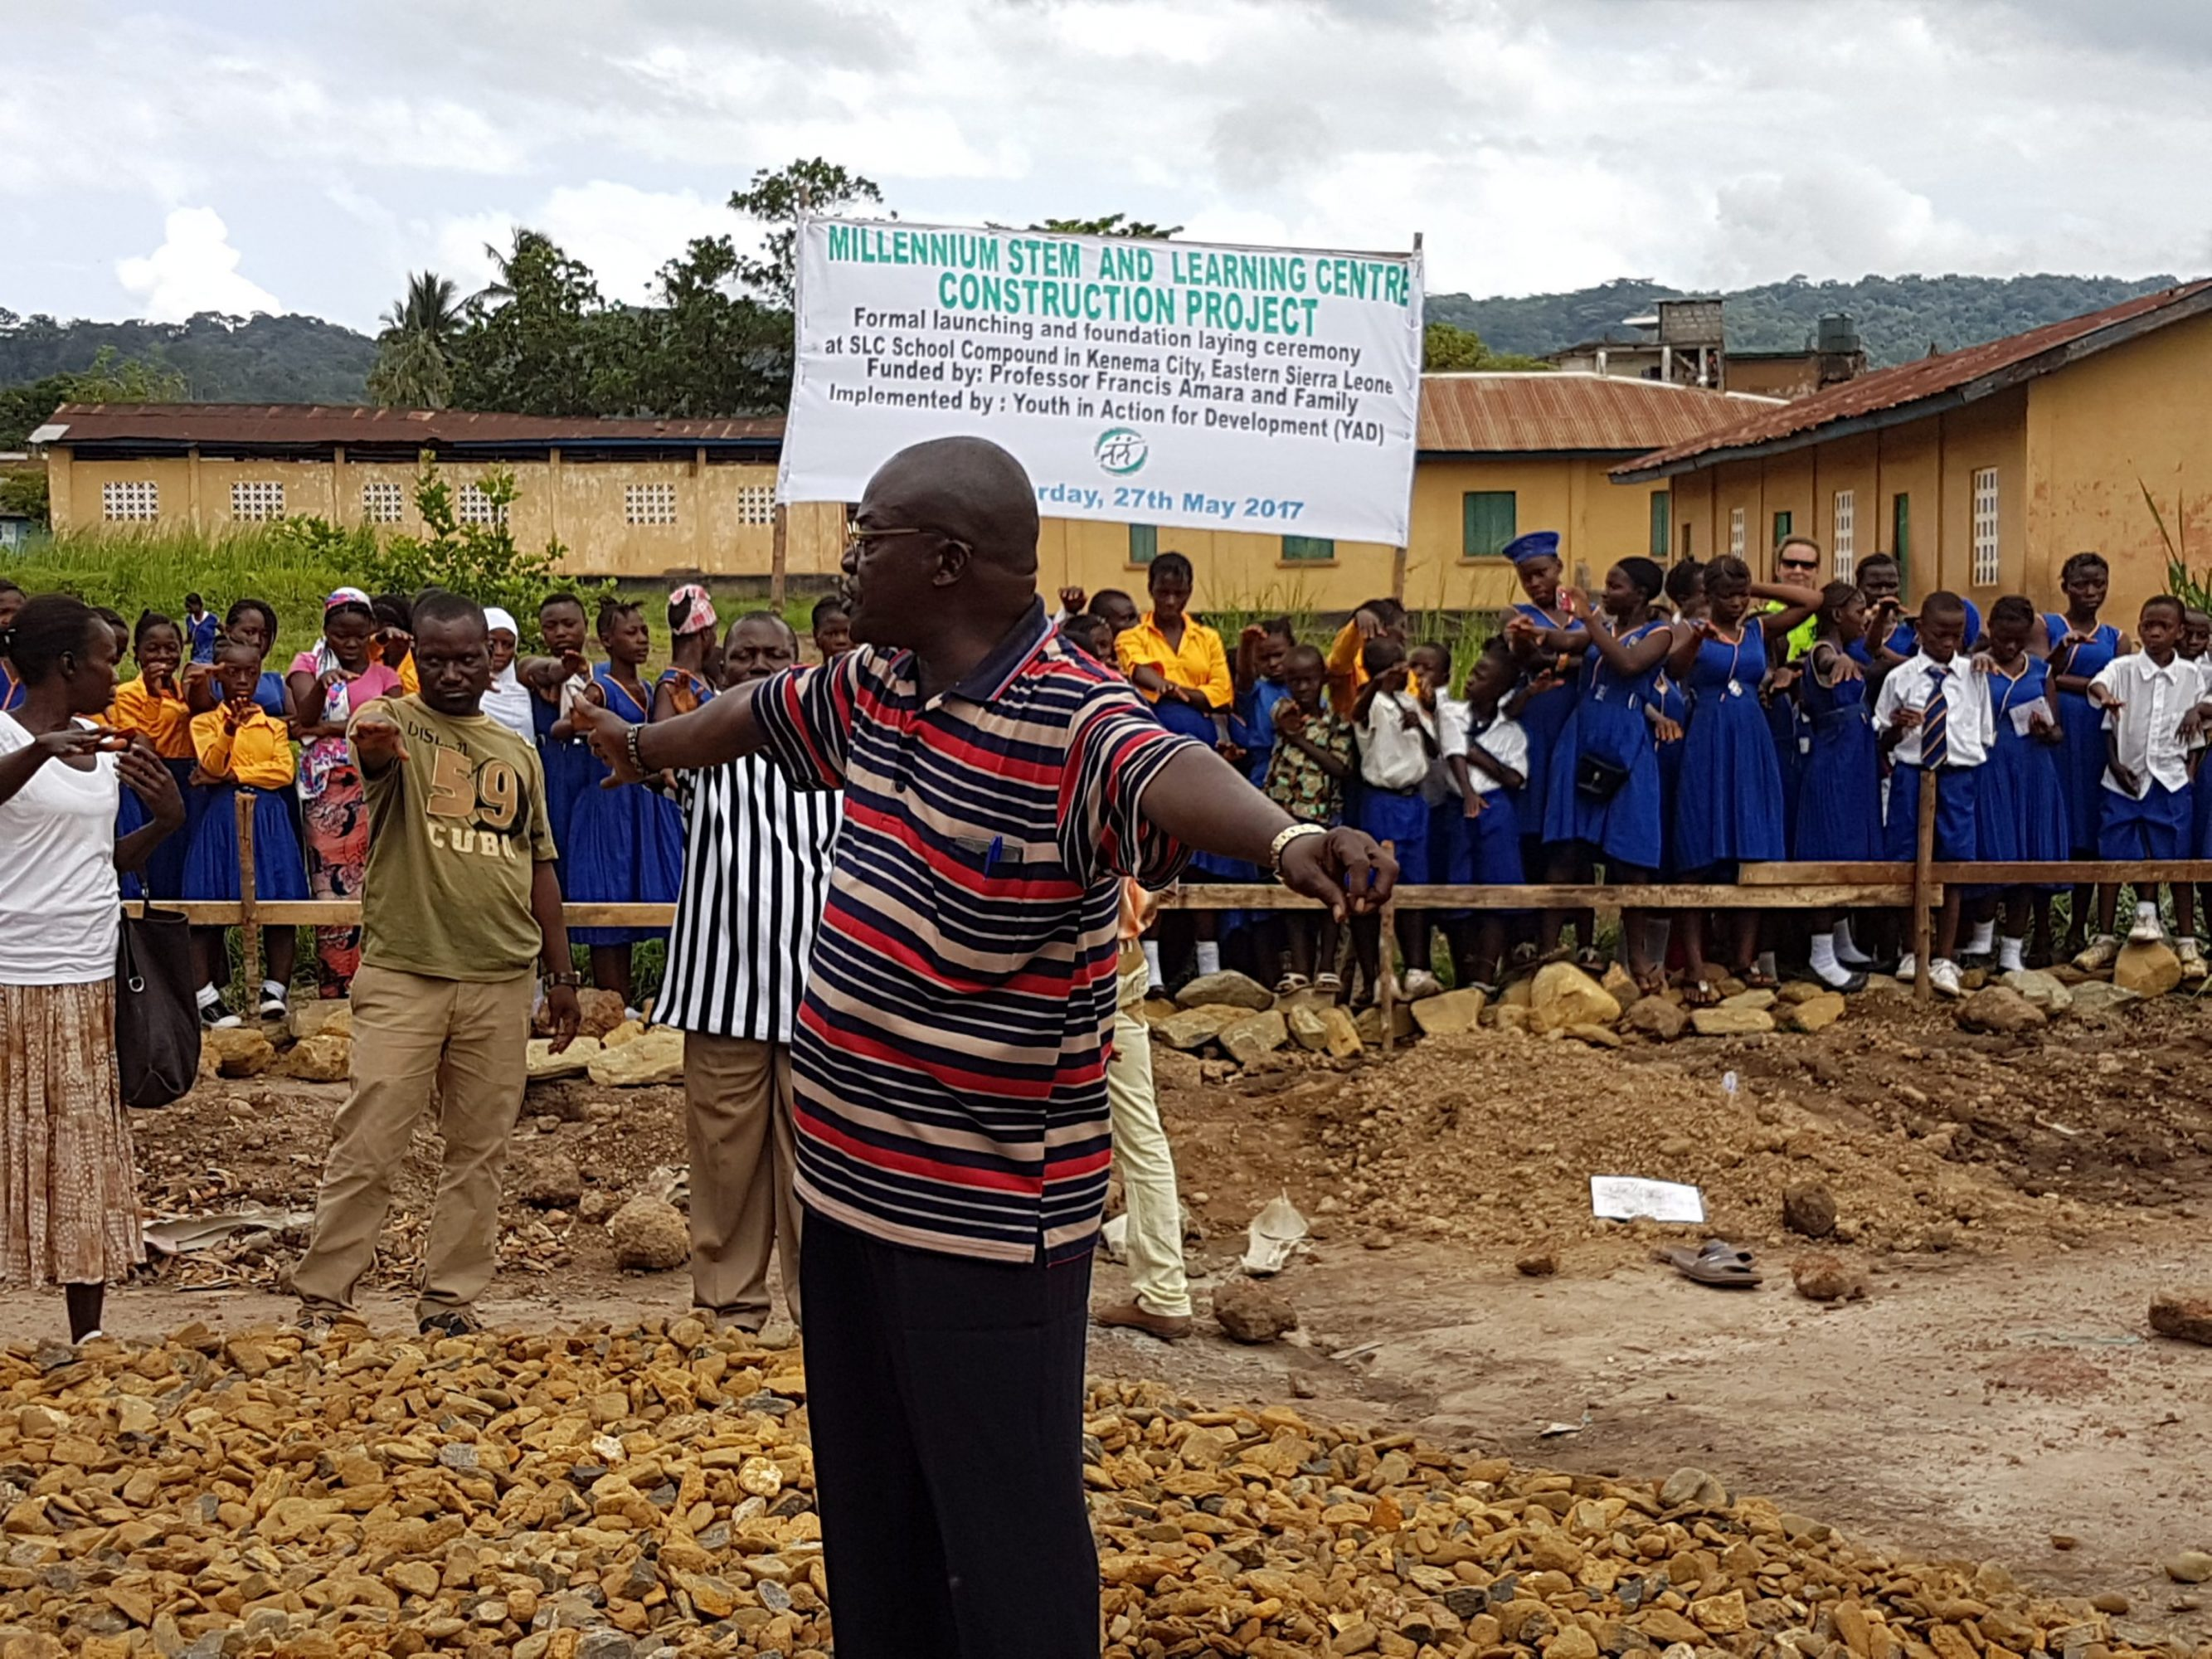 YAD Launches a Modern Science Lab Construction Project in Kenema